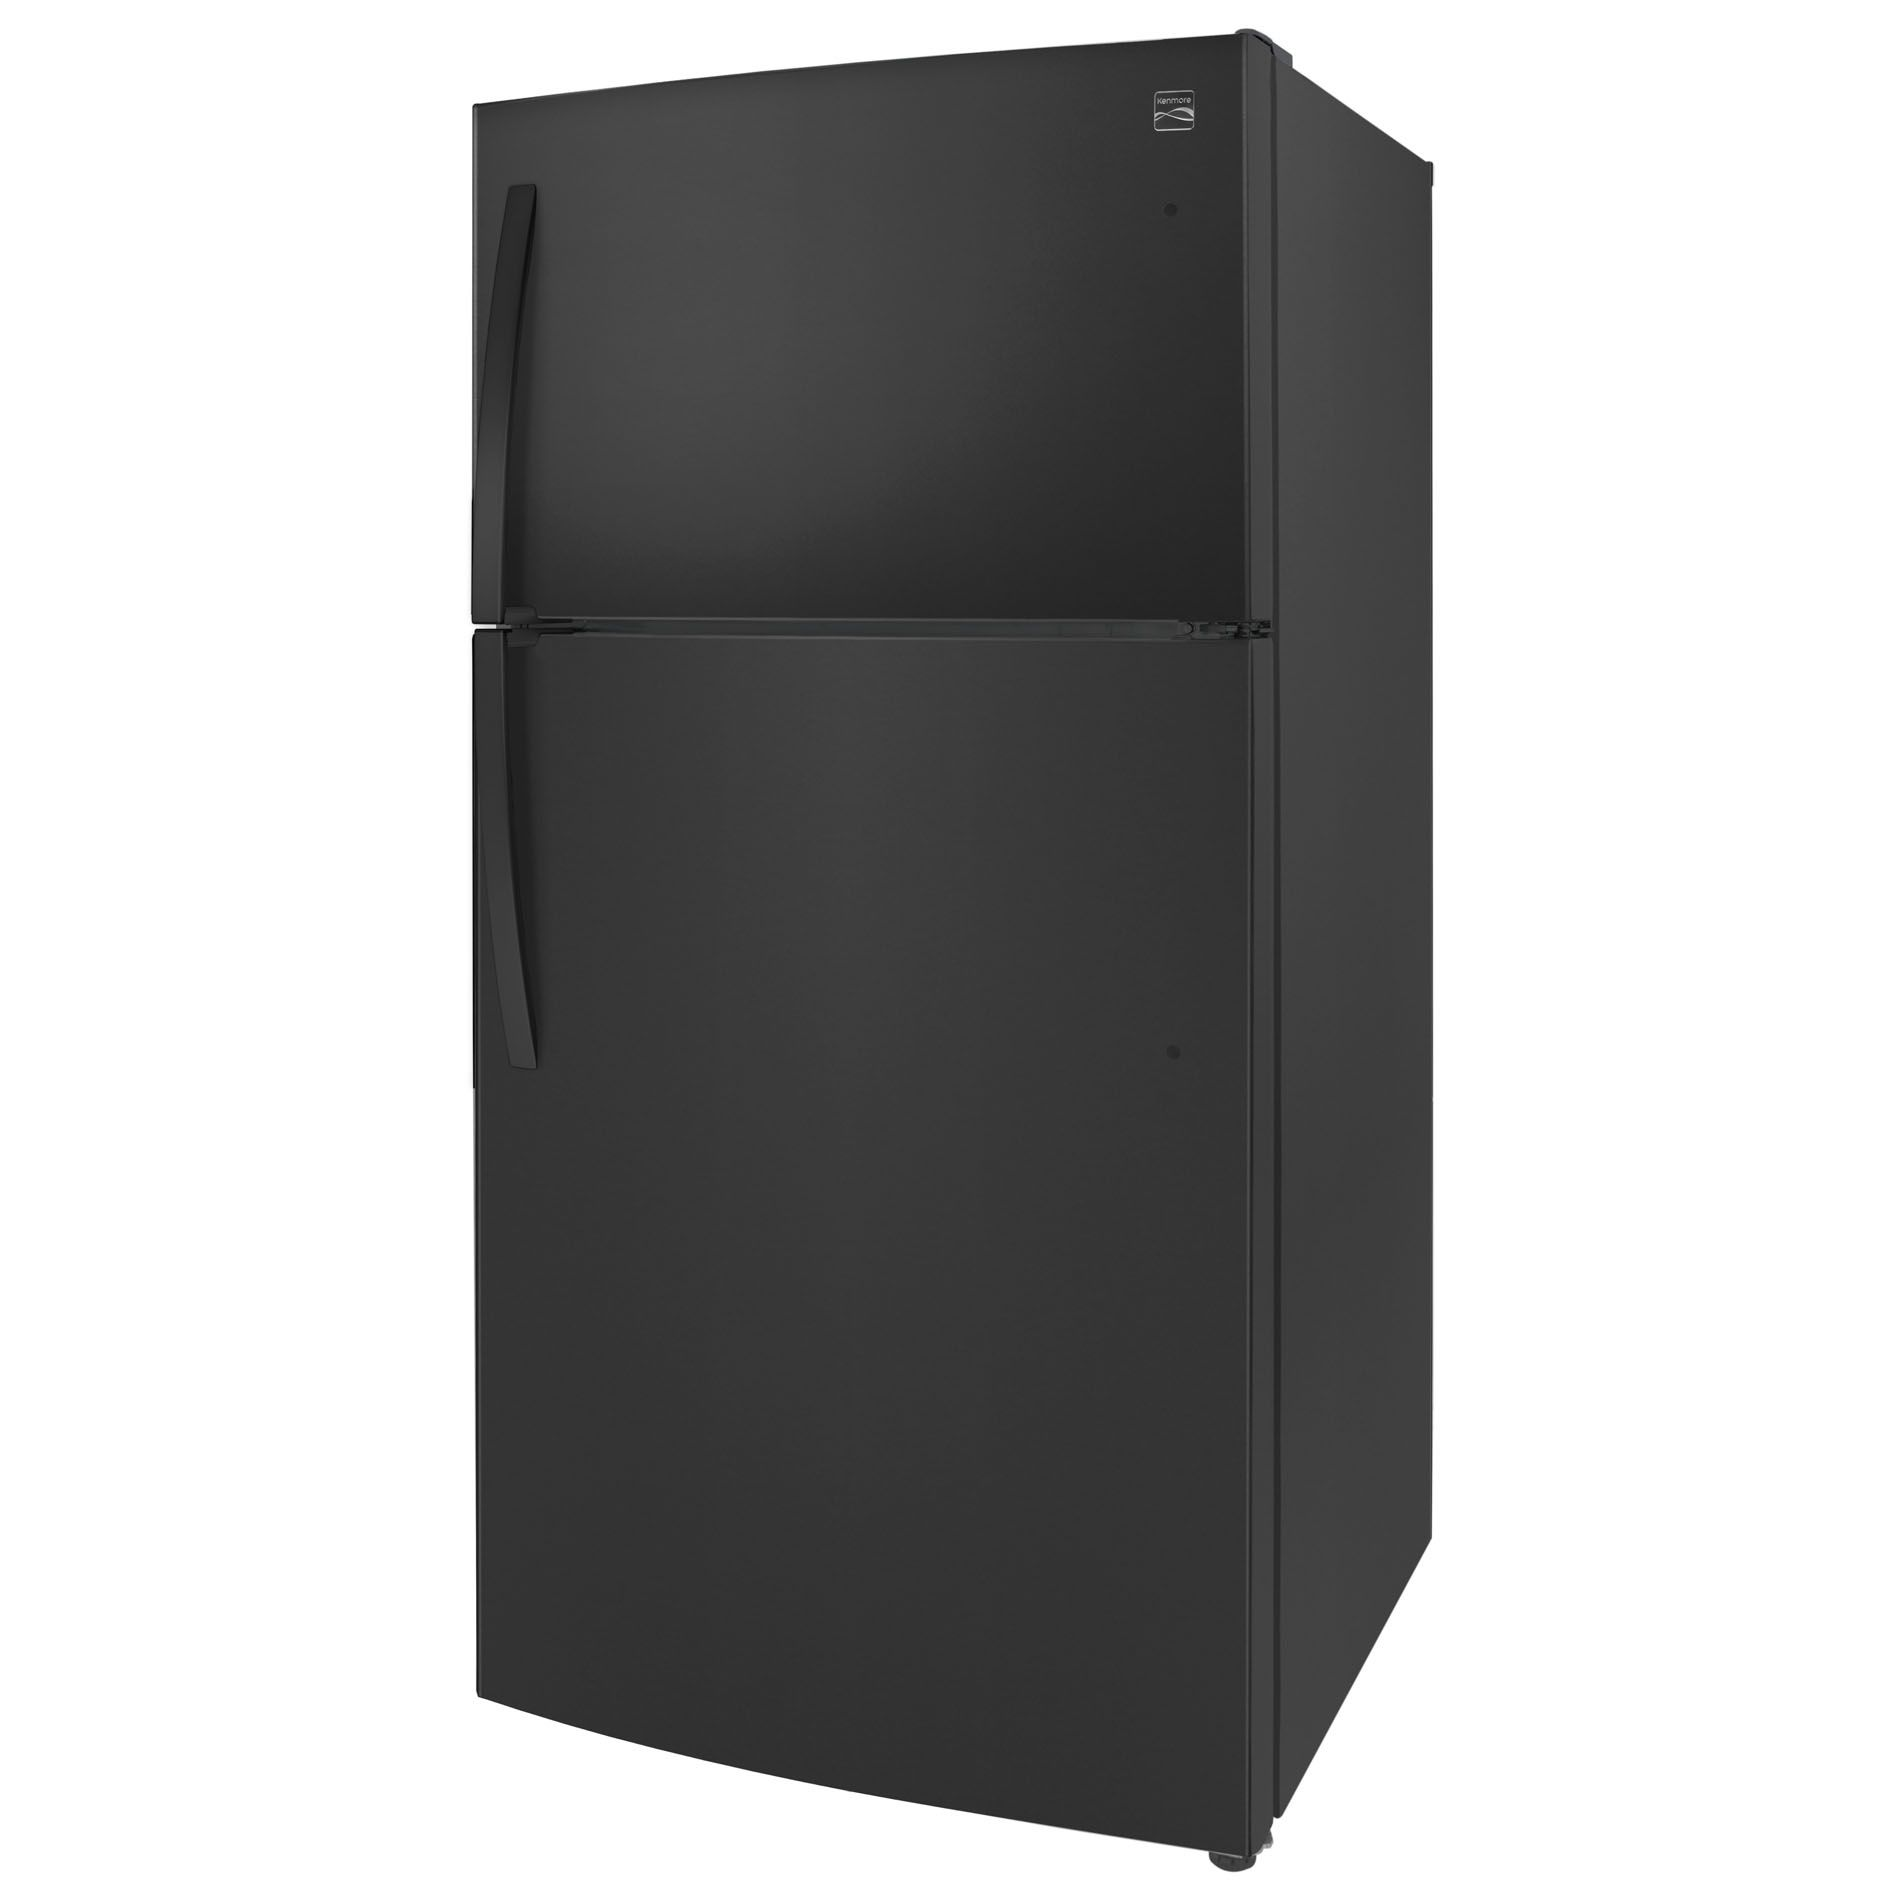 Kenmore 24 cu. ft. Top-Freezer Refrigerator - Black